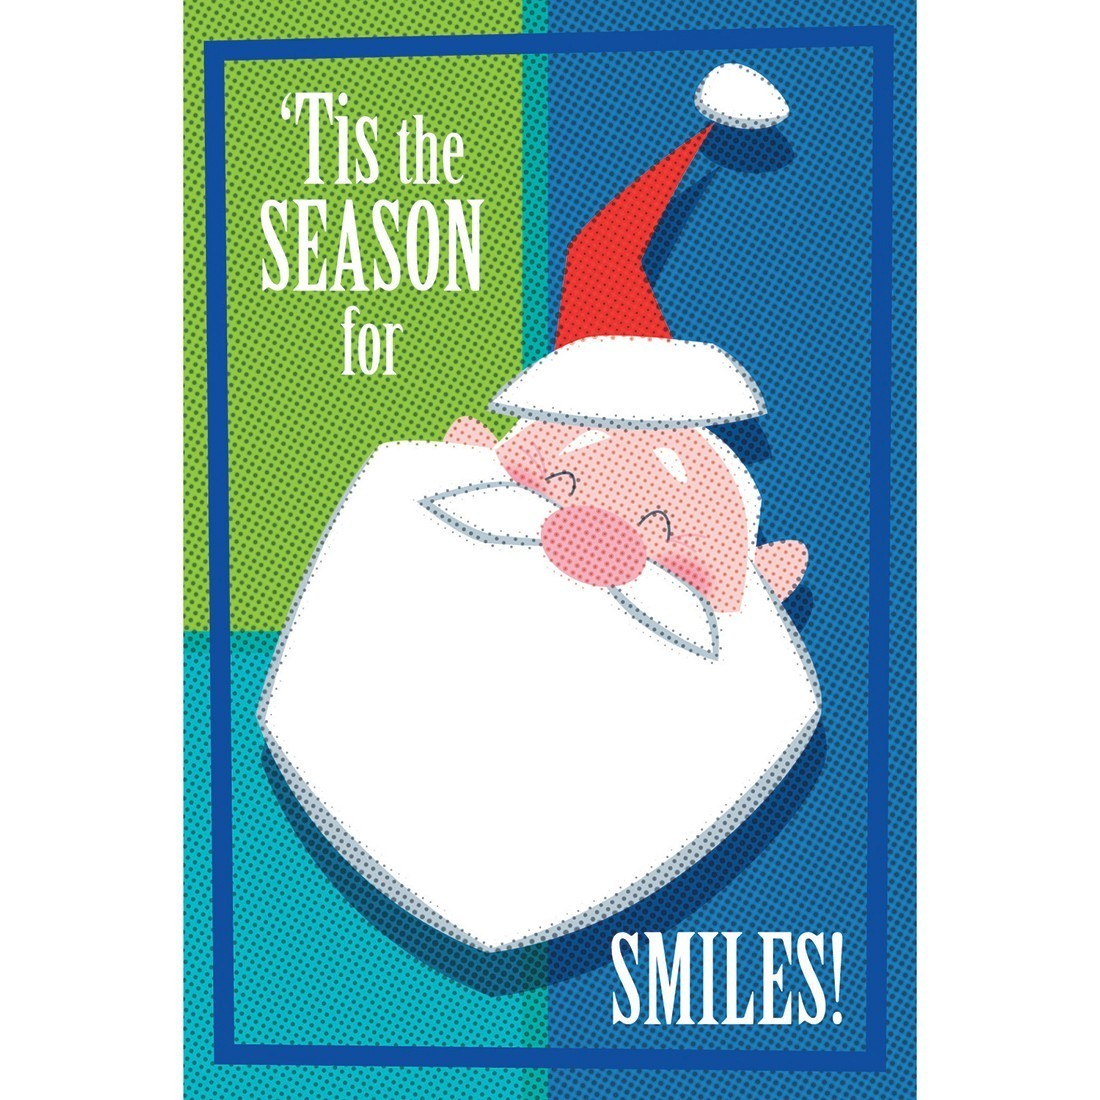 Santa Smiles Greeting Cards [image]